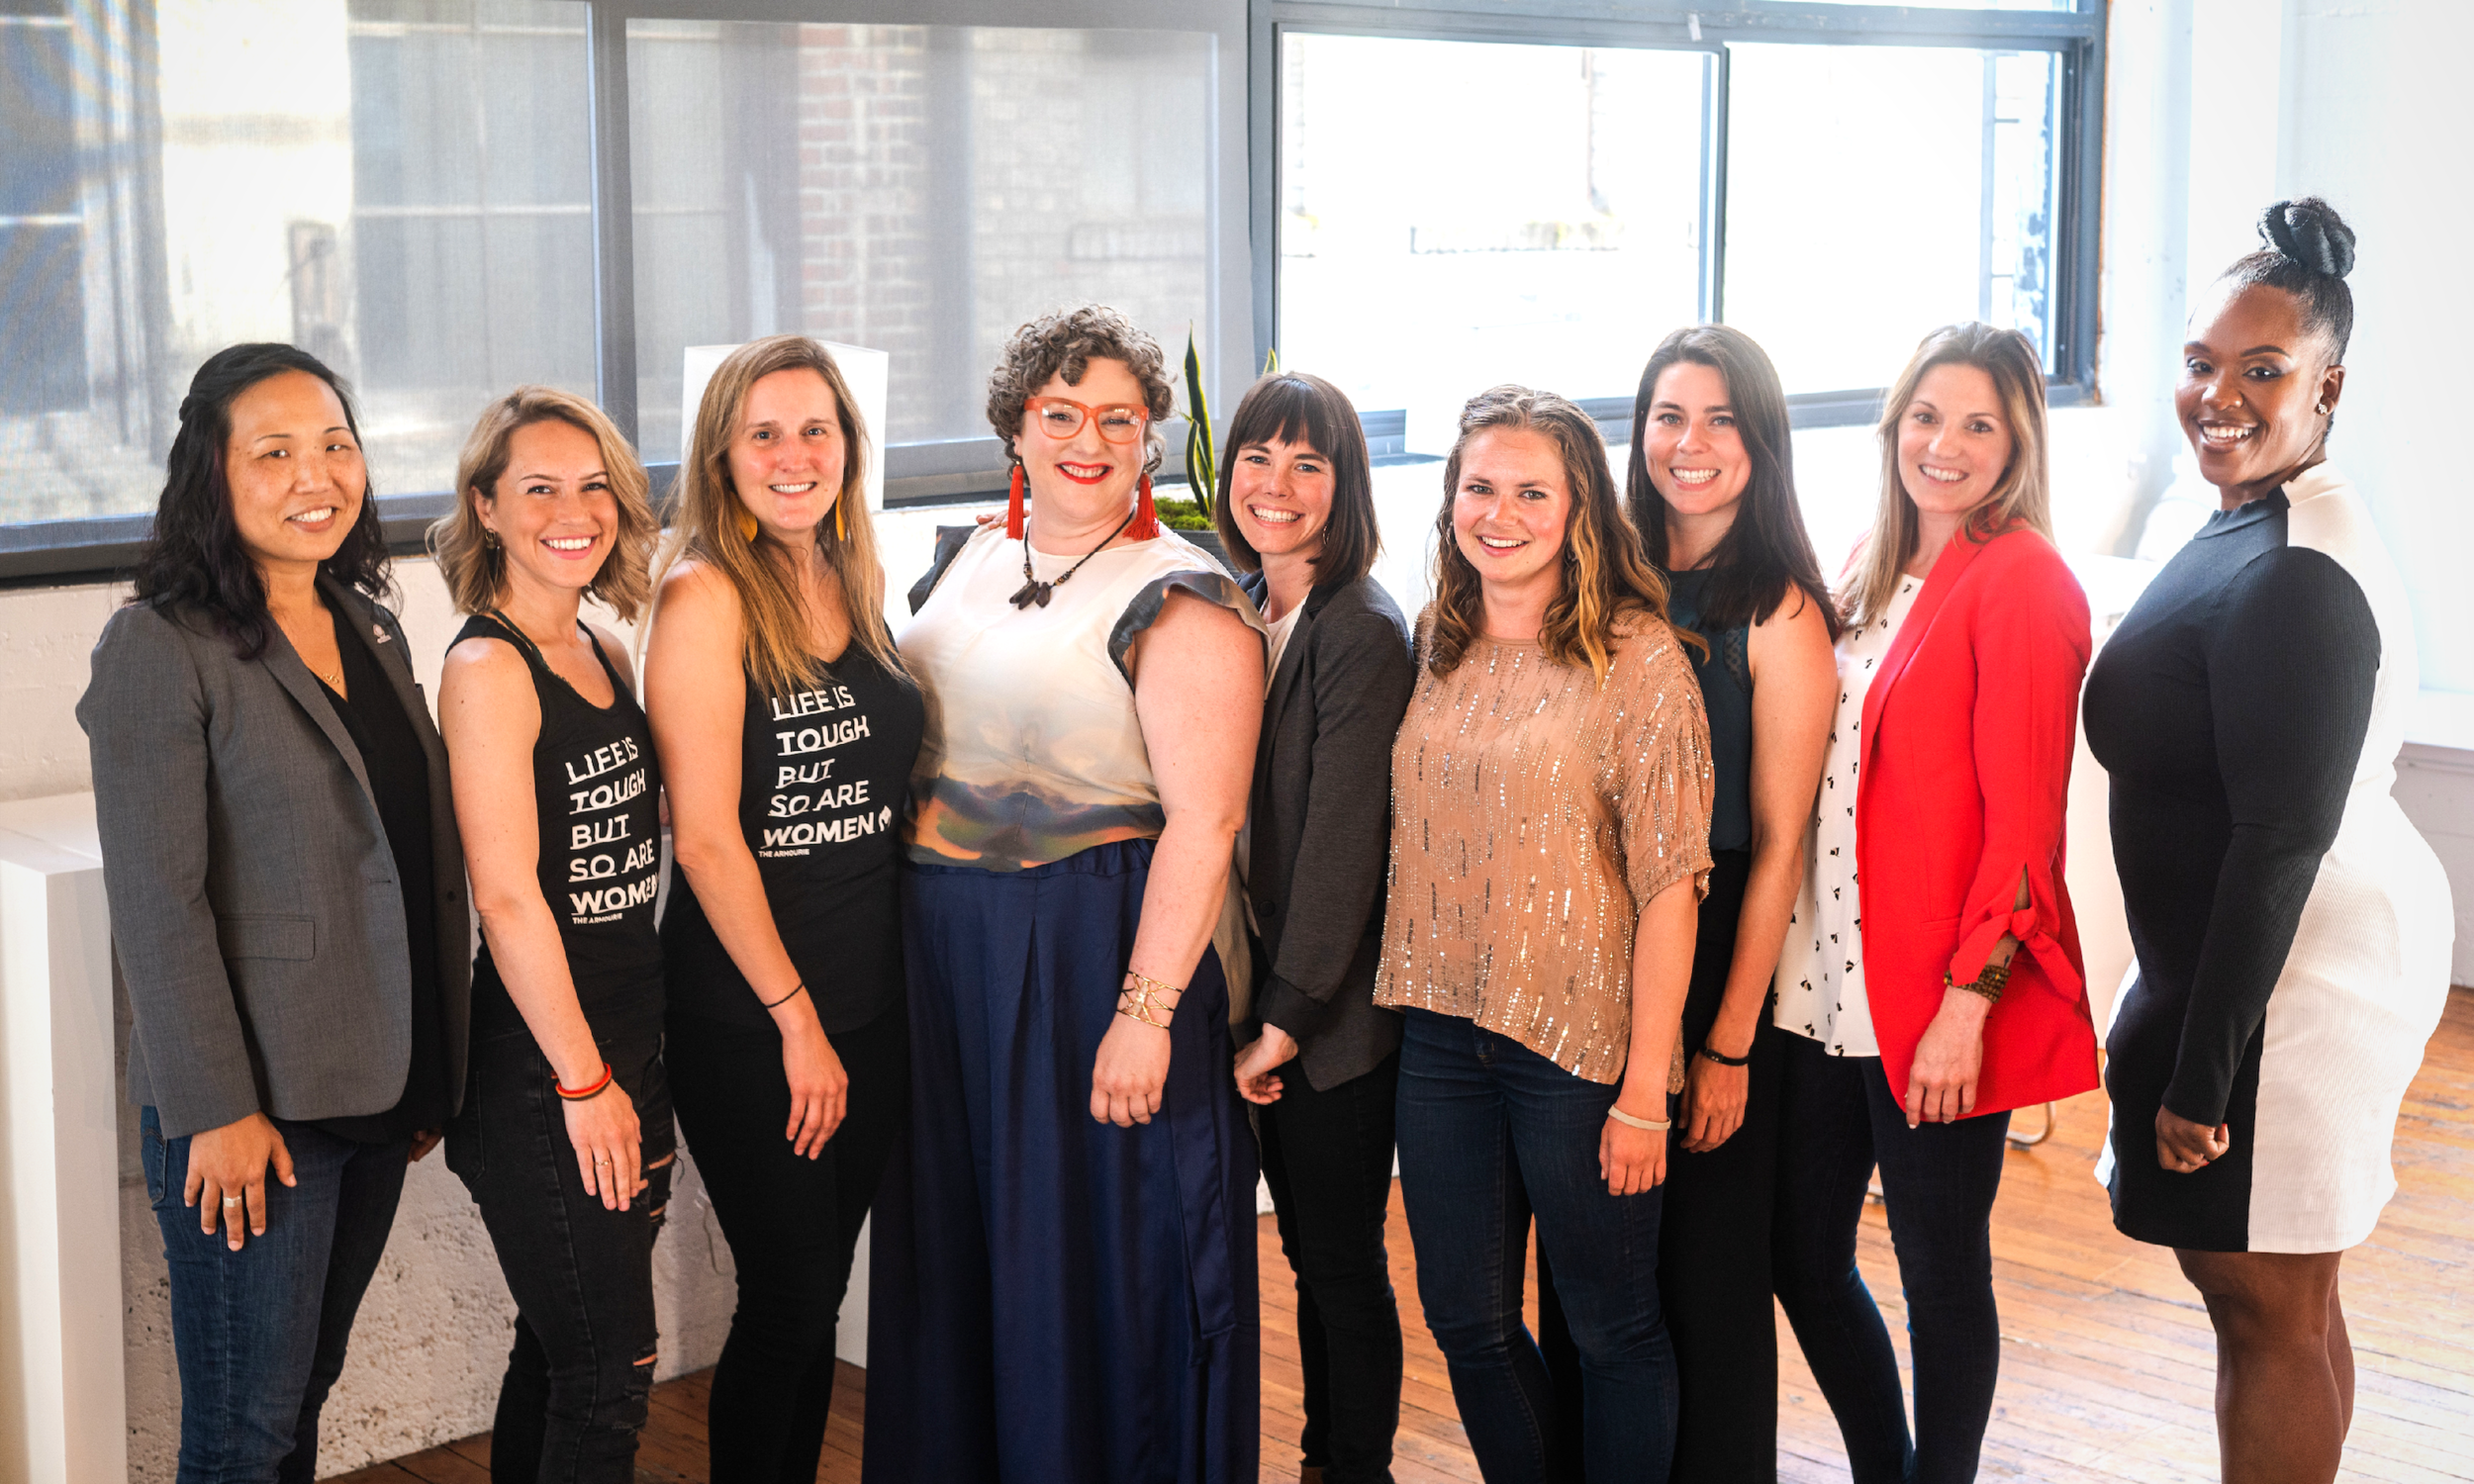 The seven iFundWomen Seattle pitching entrepreneurs (from left to right): Laura Clise, Founder,  Intentionalist ; Alex Pinkerton & Megan Pakula, Co-Founders,  The Armourie ; Hannah Schnabel, Founder,  Belle Ampleur ; Megan Febuary, Founder,  For Women Who Roar ; Genevieve Livingston & Marimar White-Espin, Co-Founders,  Eco Collective ; Sarah Haggard, Founder,  Tribute ; Dr. Cheryl Ingram, Founder,  Diverse City LLC .